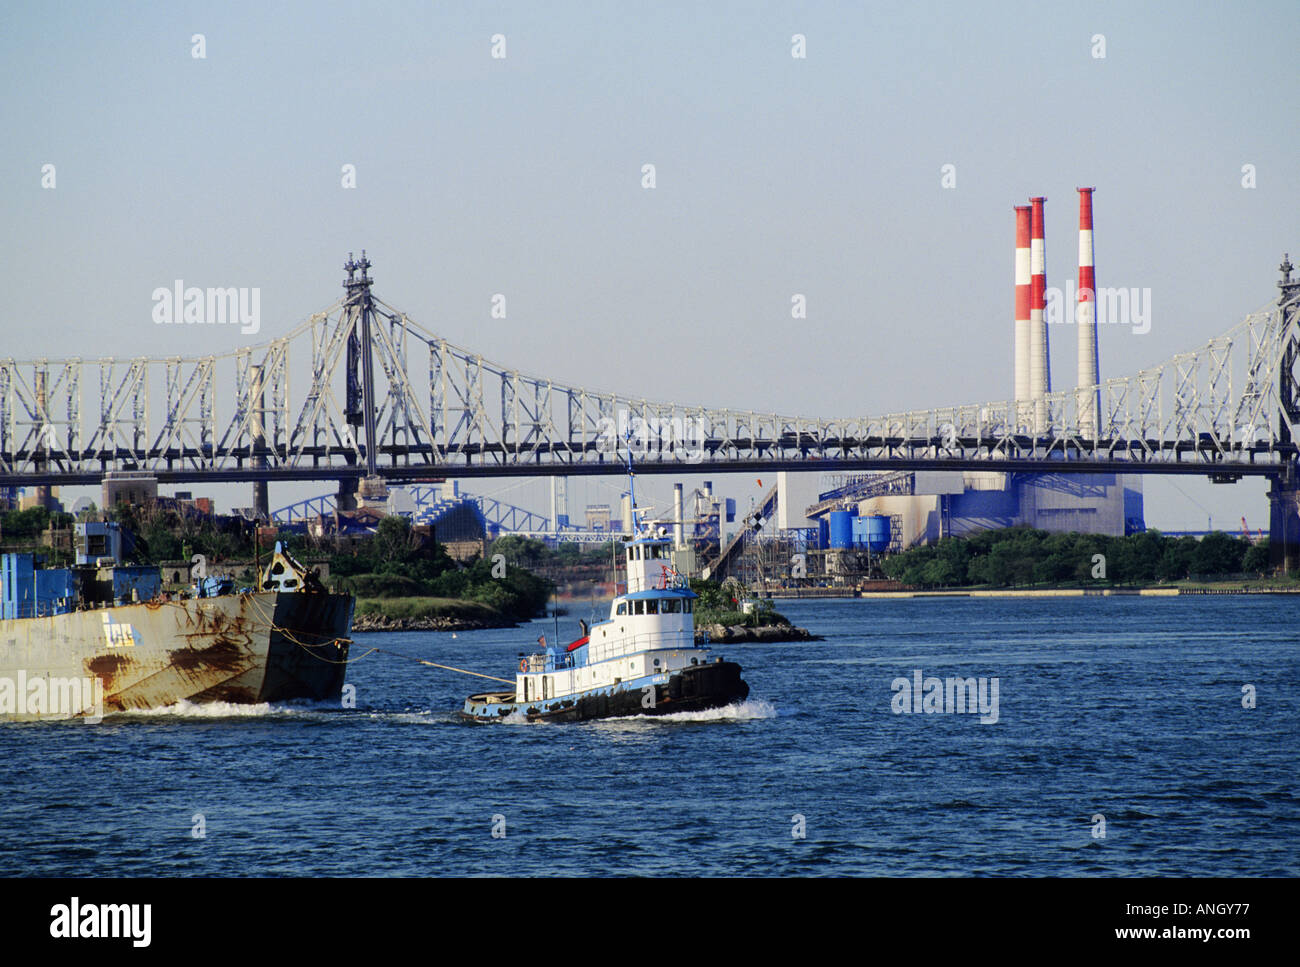 New York East River Tugboat Pulling Scow Manhattan Bridge and Con Edison Electricity Plant in Background USA - Stock Image